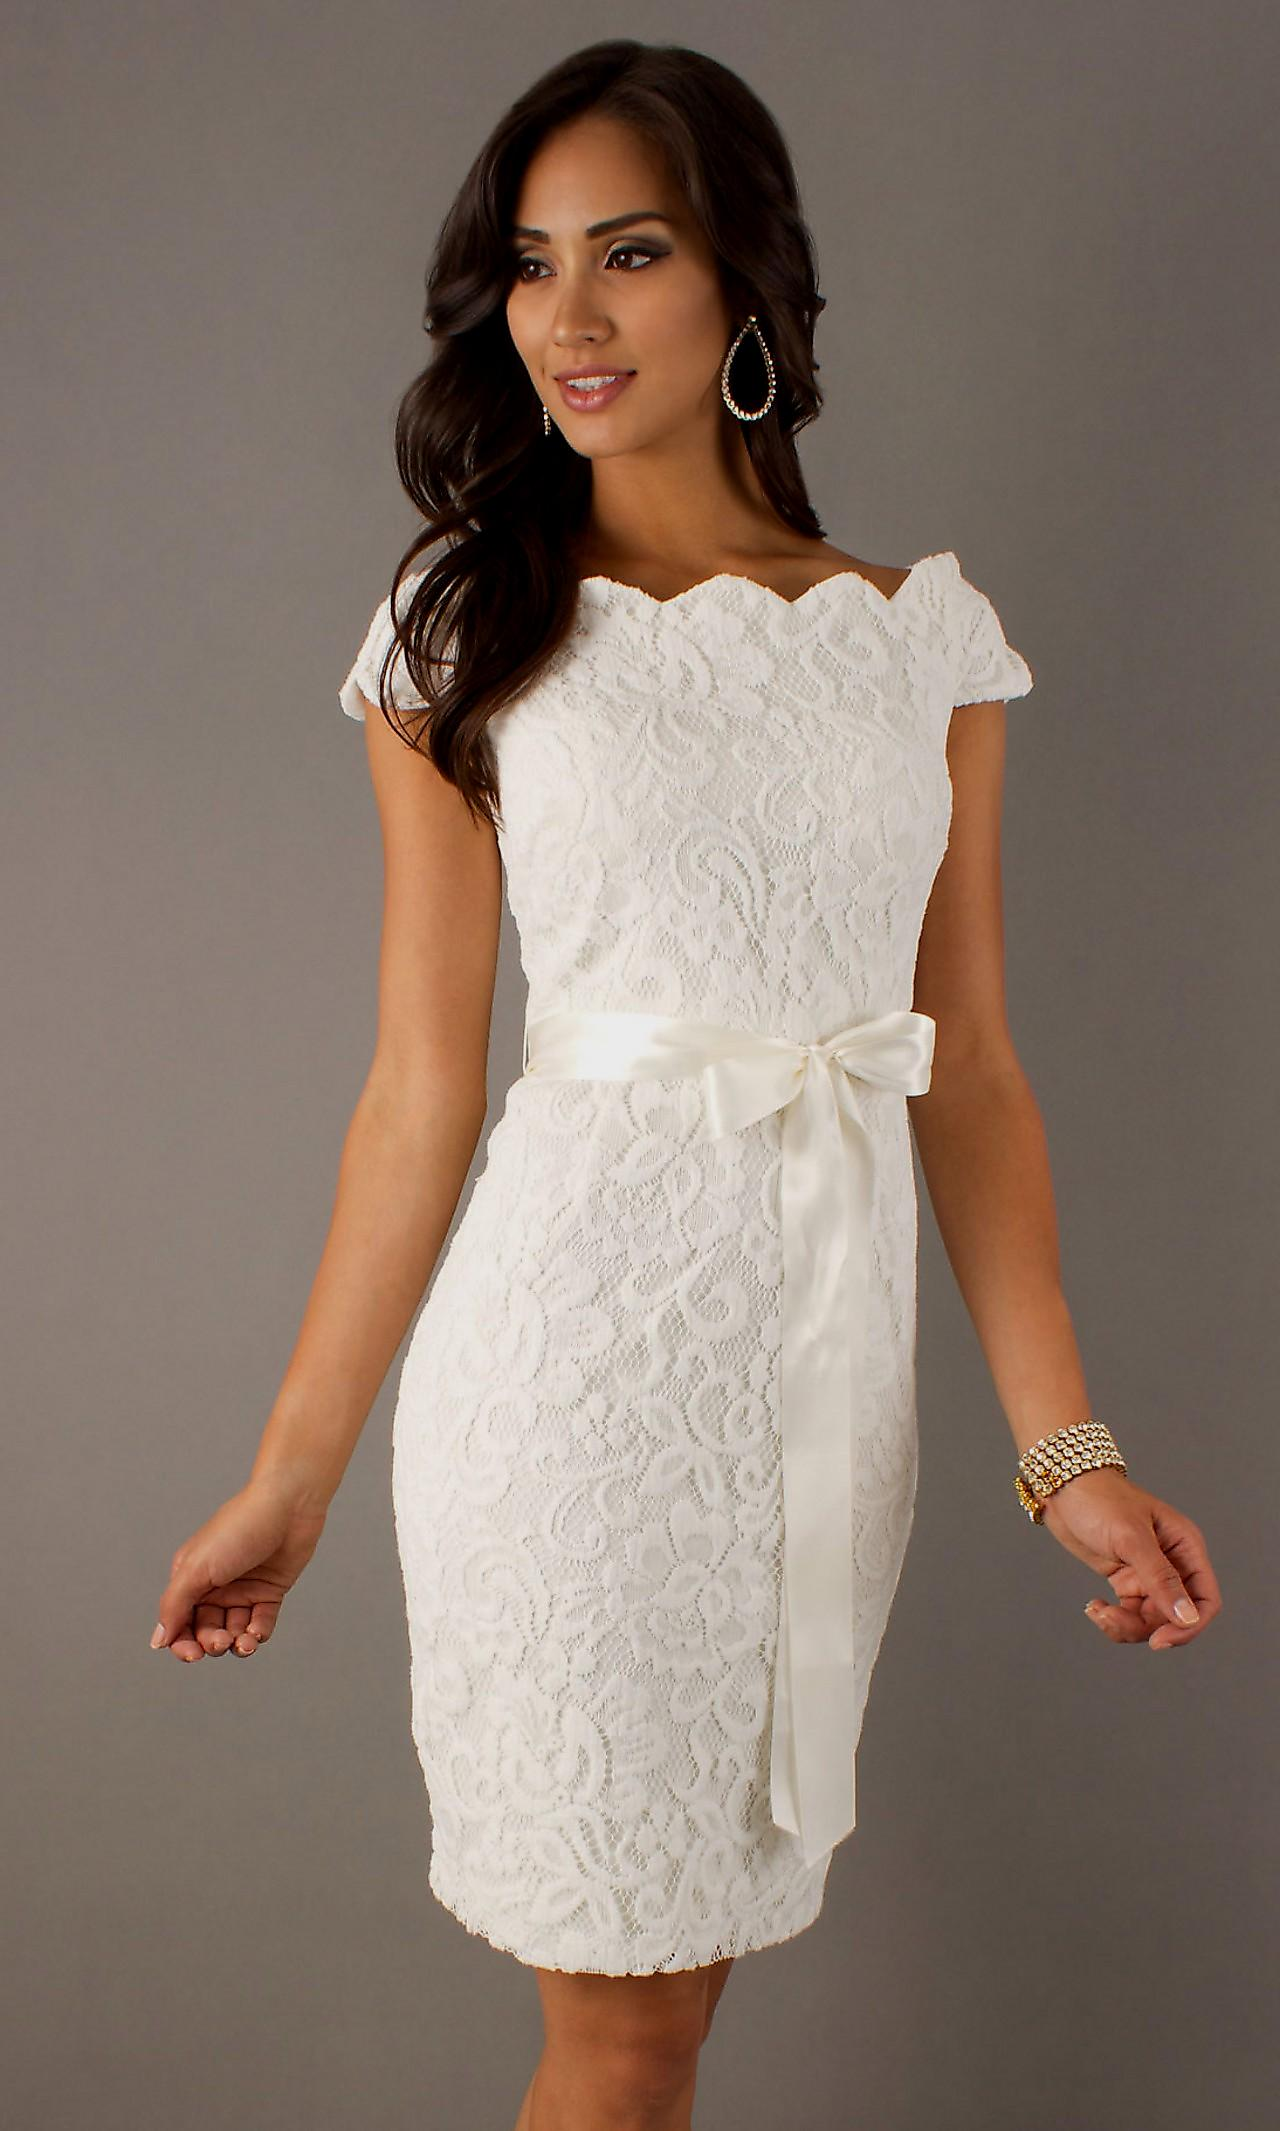 short white dresses beautiful evening dress blogs: short white dress with lace tejvpoa